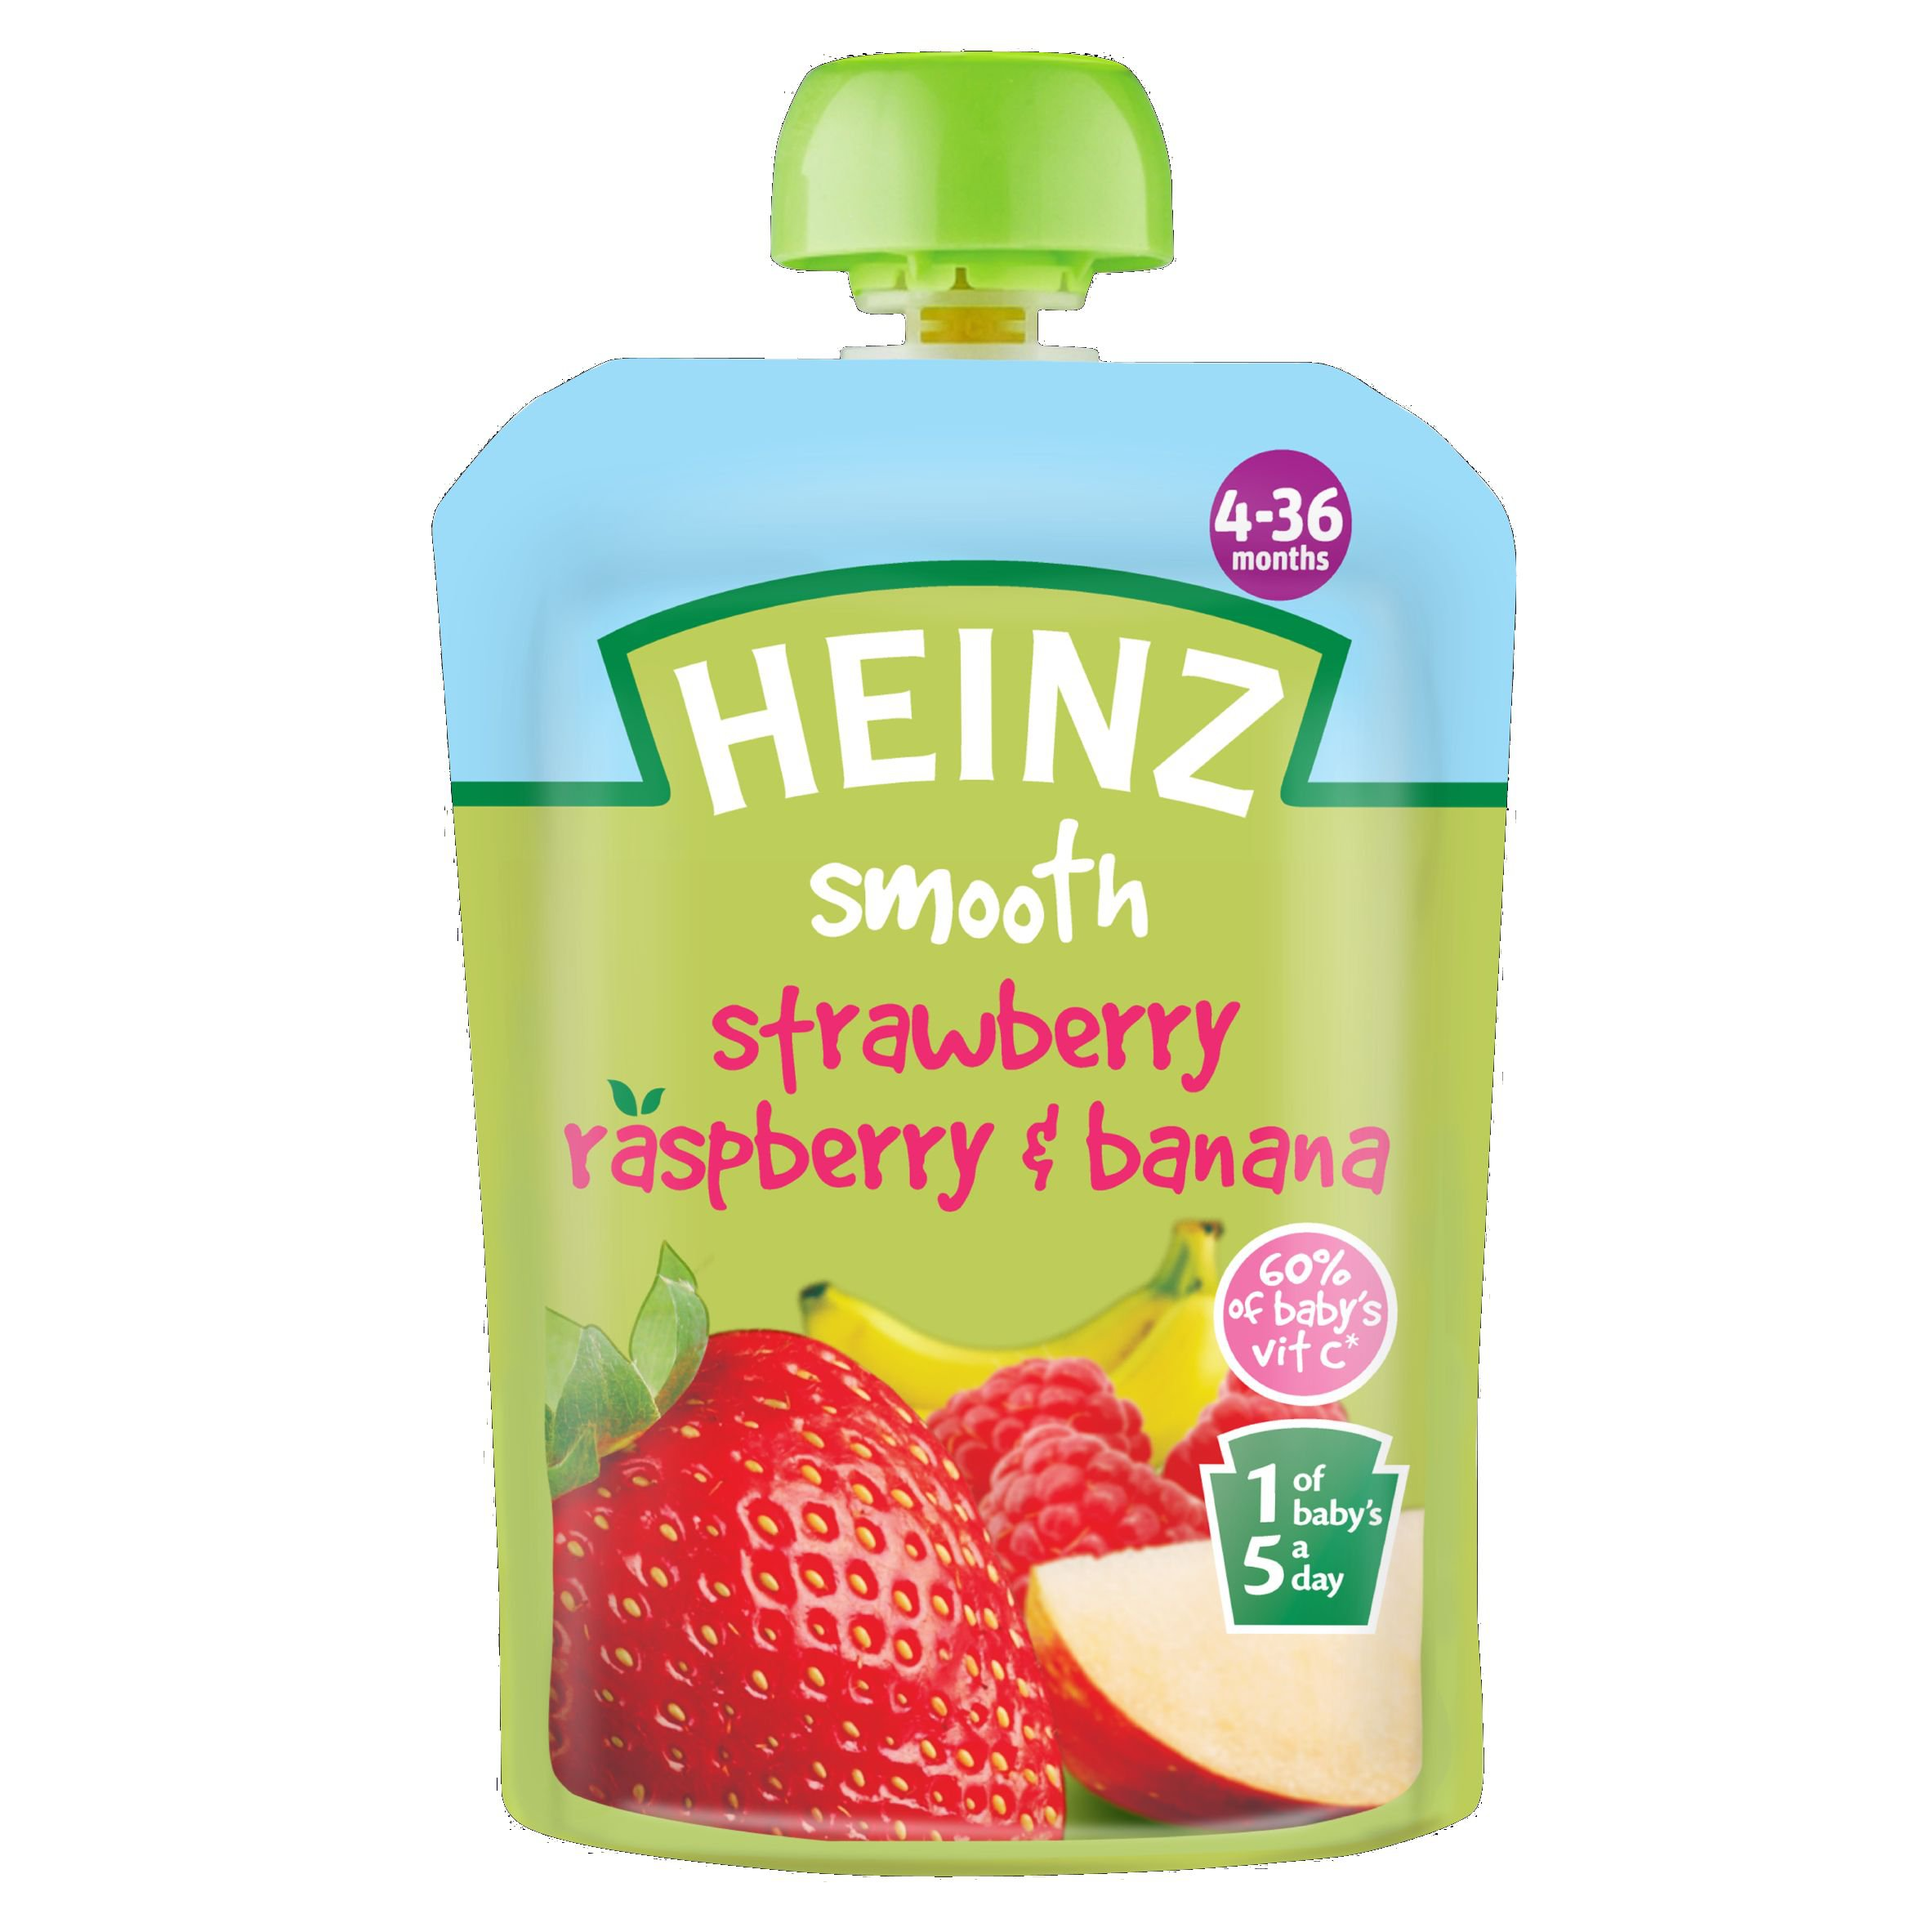 Heinz Strawberry/ Raspberry and Banana Fruit Pouch 4-36 Months 100 g (Pack of 6) by Heinz (Image #1)